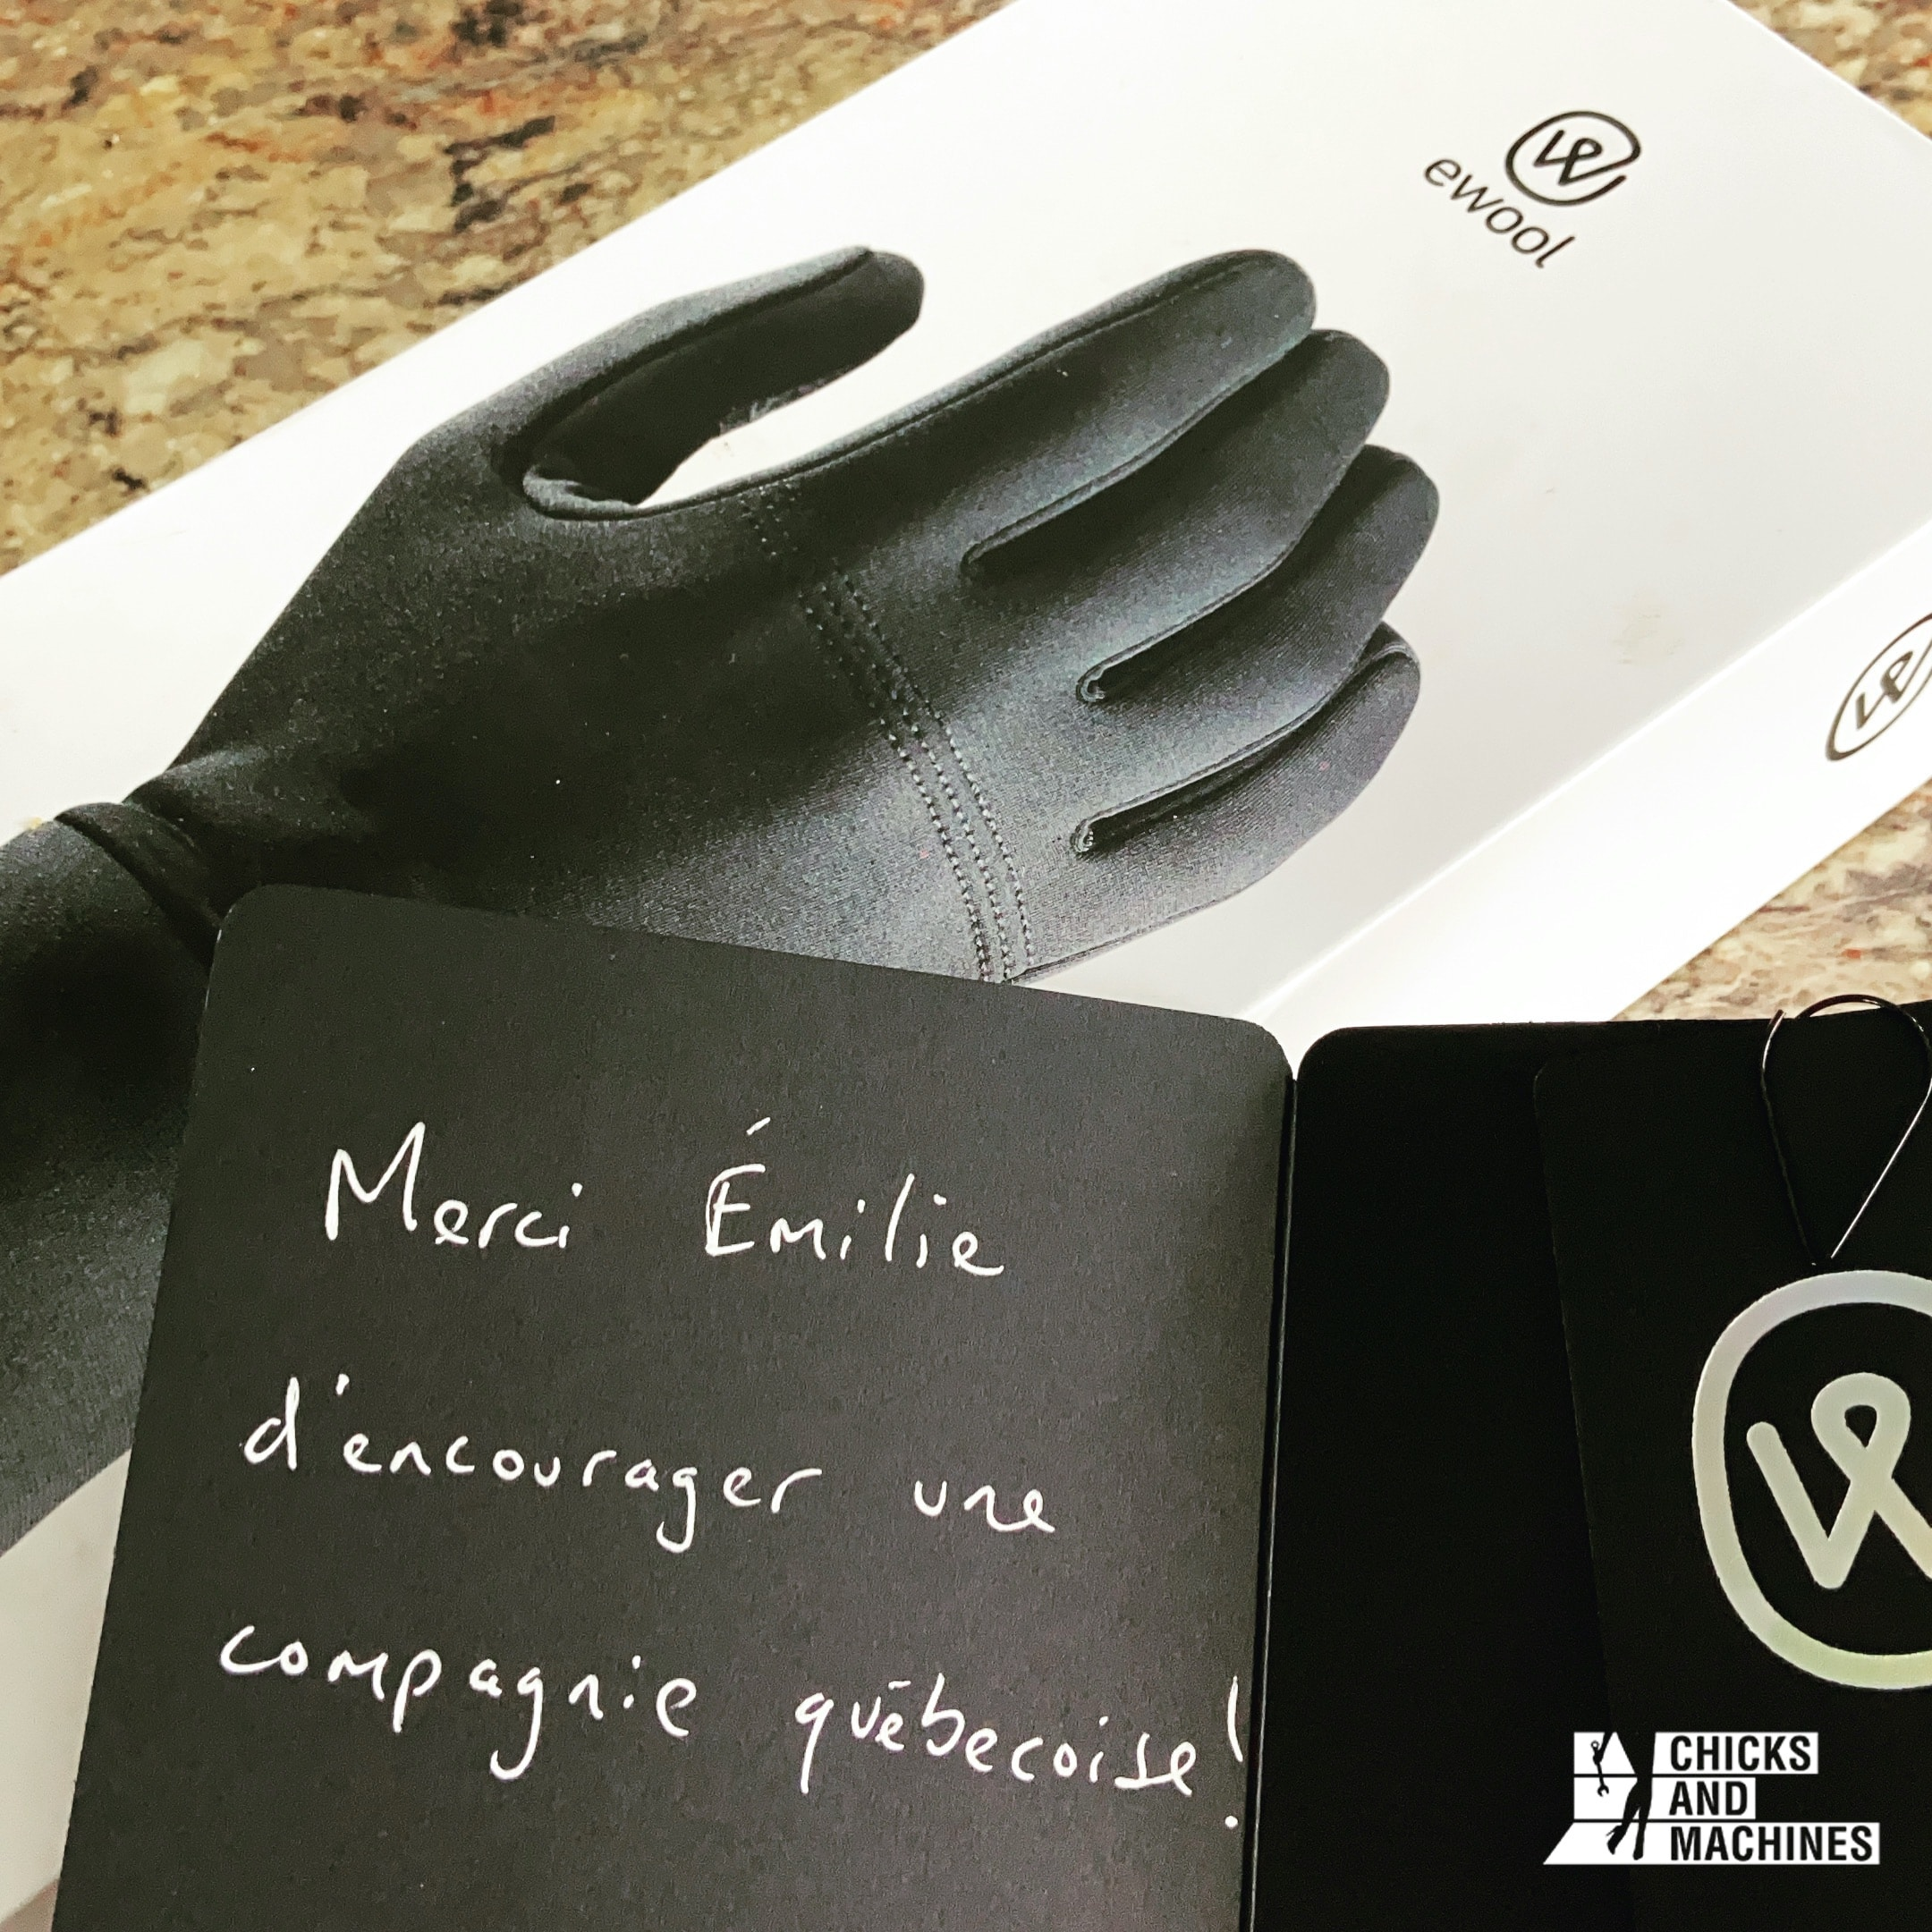 The beautiful message that Emi received when she opened her package.